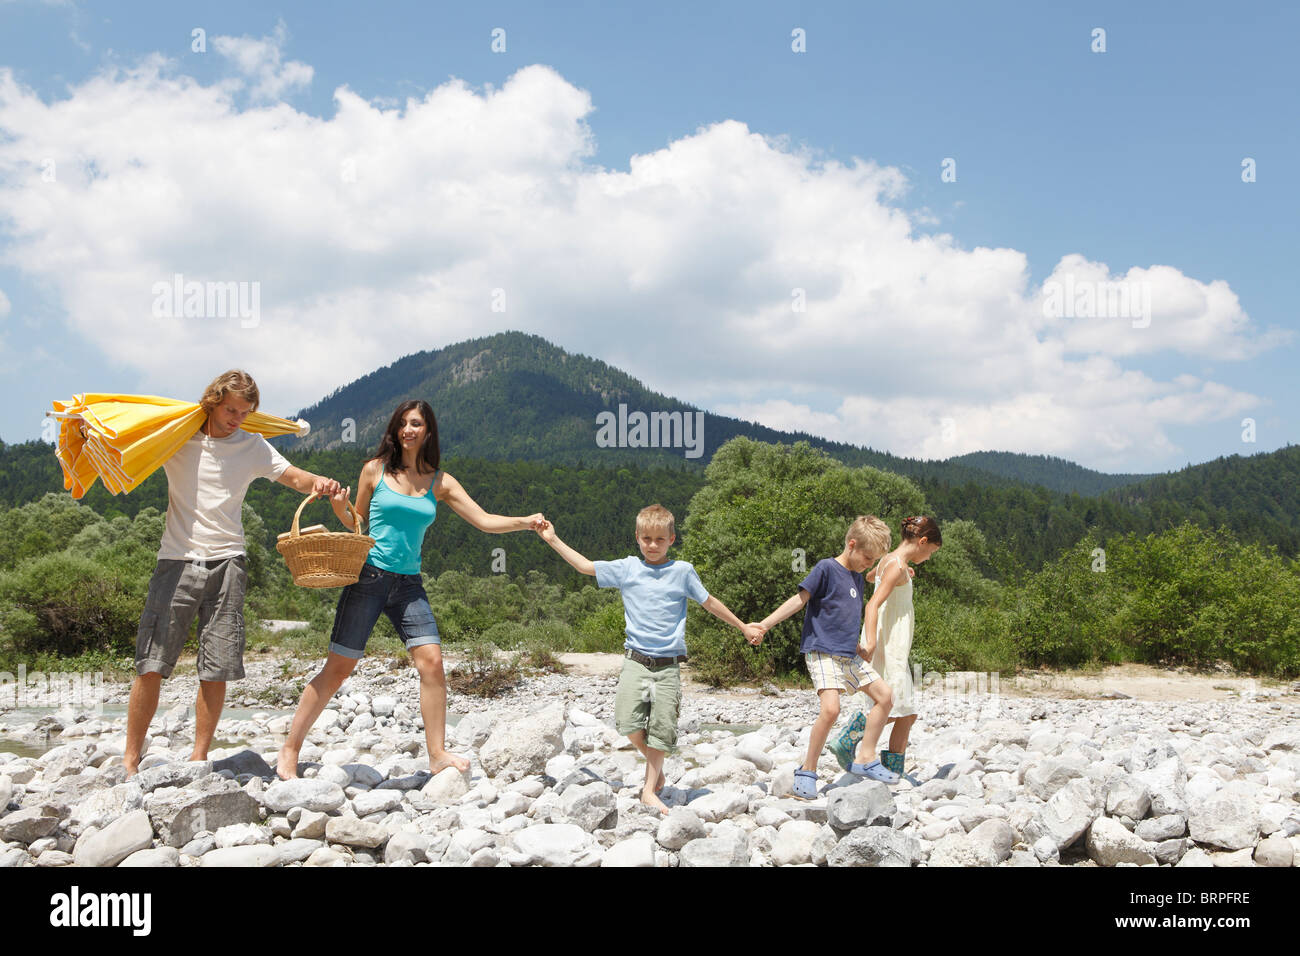 Free Time by the River in the Mountains - Stock Image